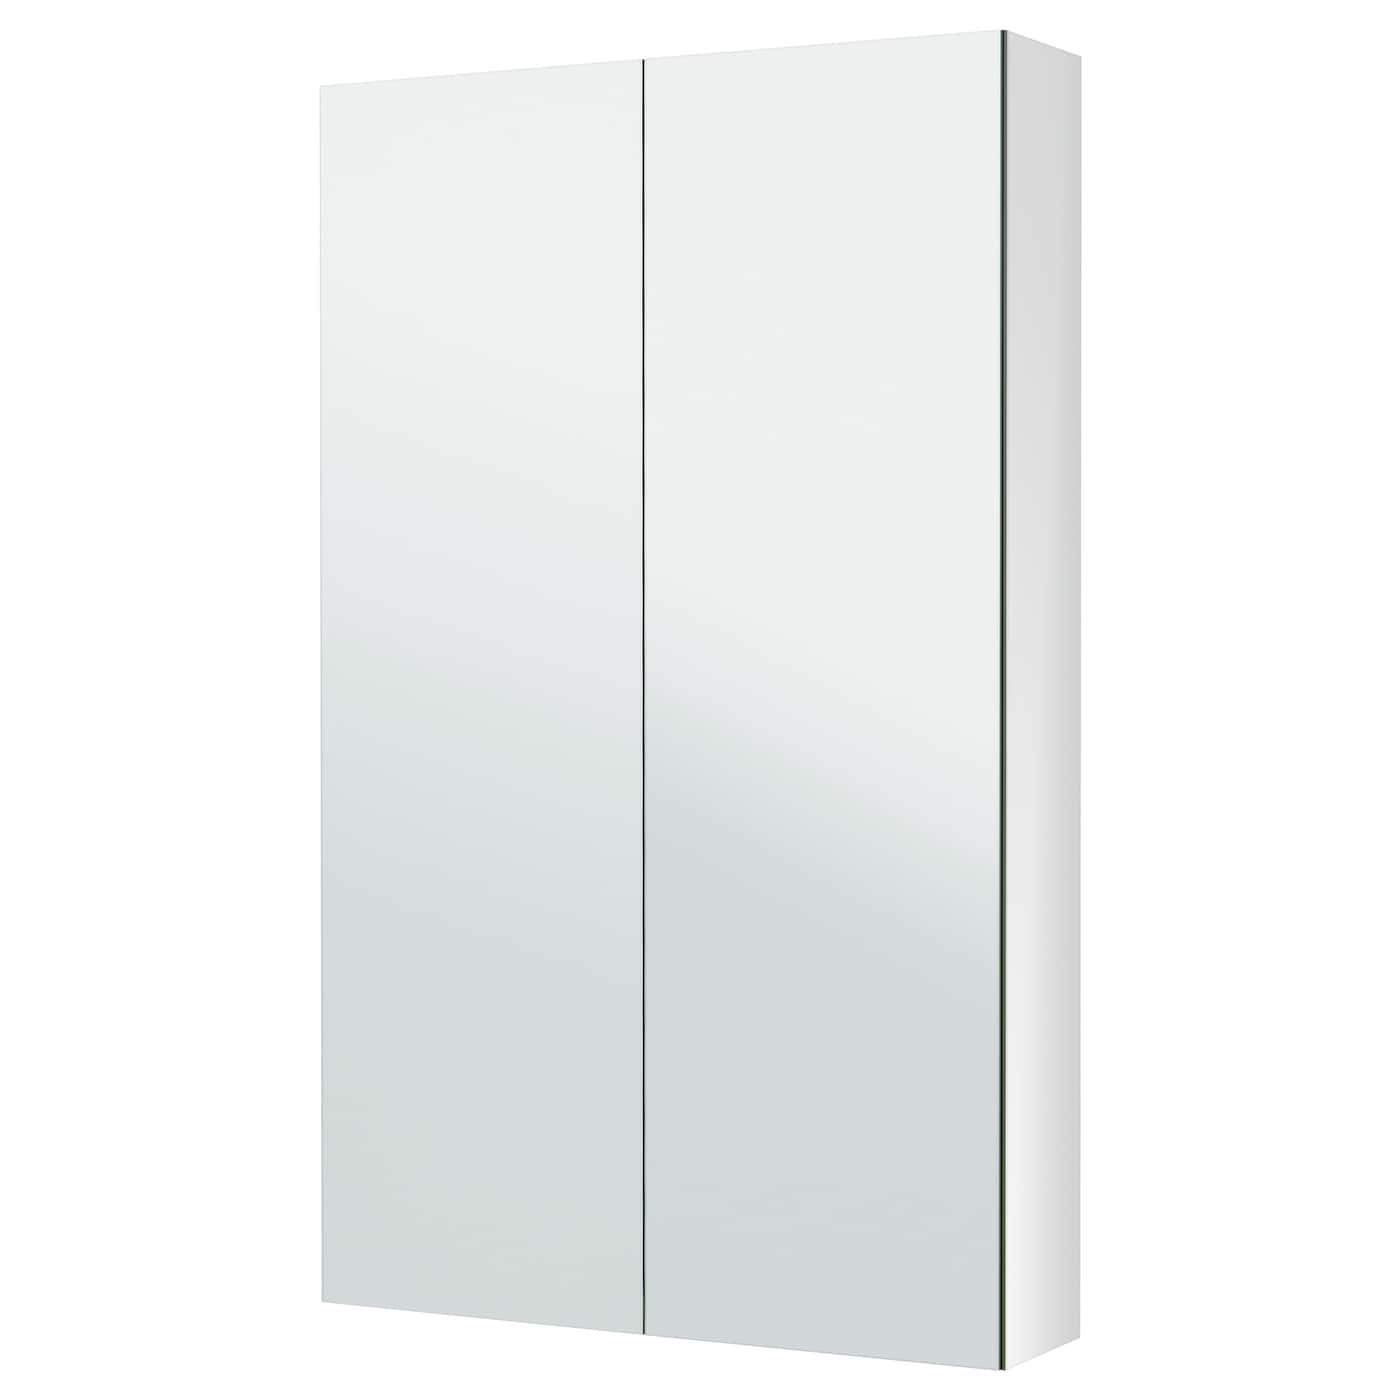 IKEA GODMORGON mirror cabinet with 2 doors Mirror both on the outside and the inside.